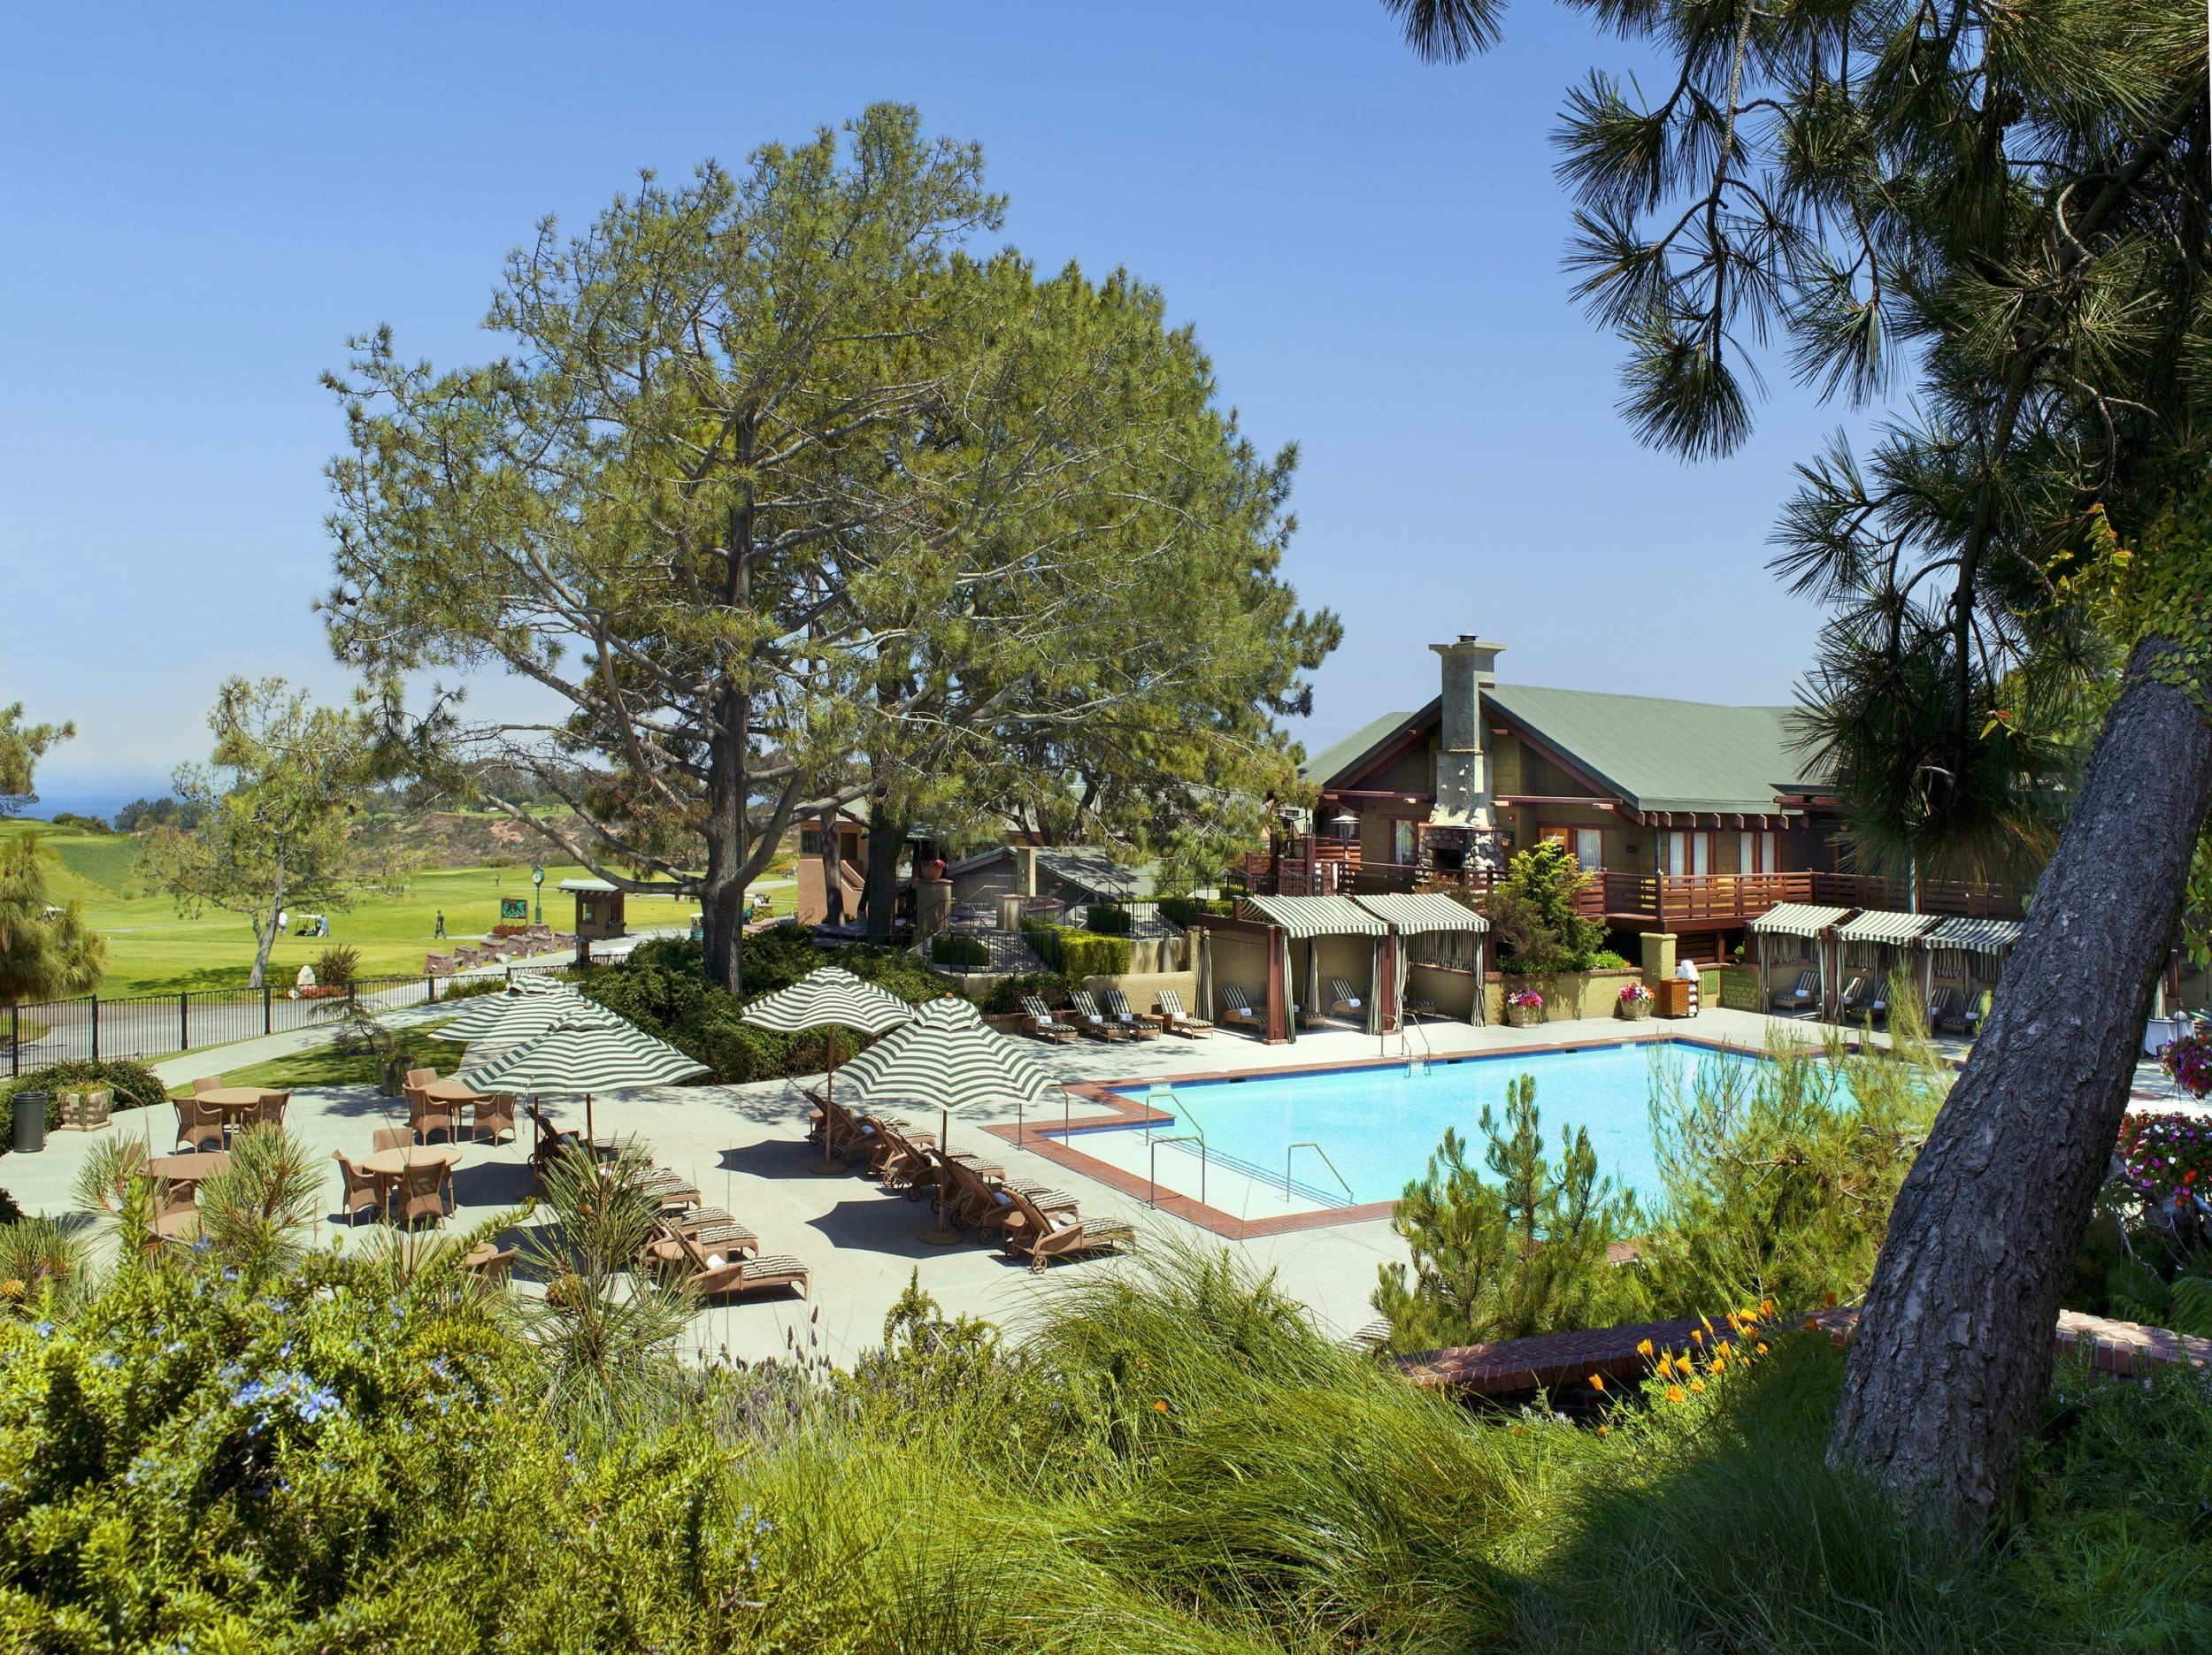 Outdoor swimming pool area at The Lodge at Torrey Pines in La Jolla.